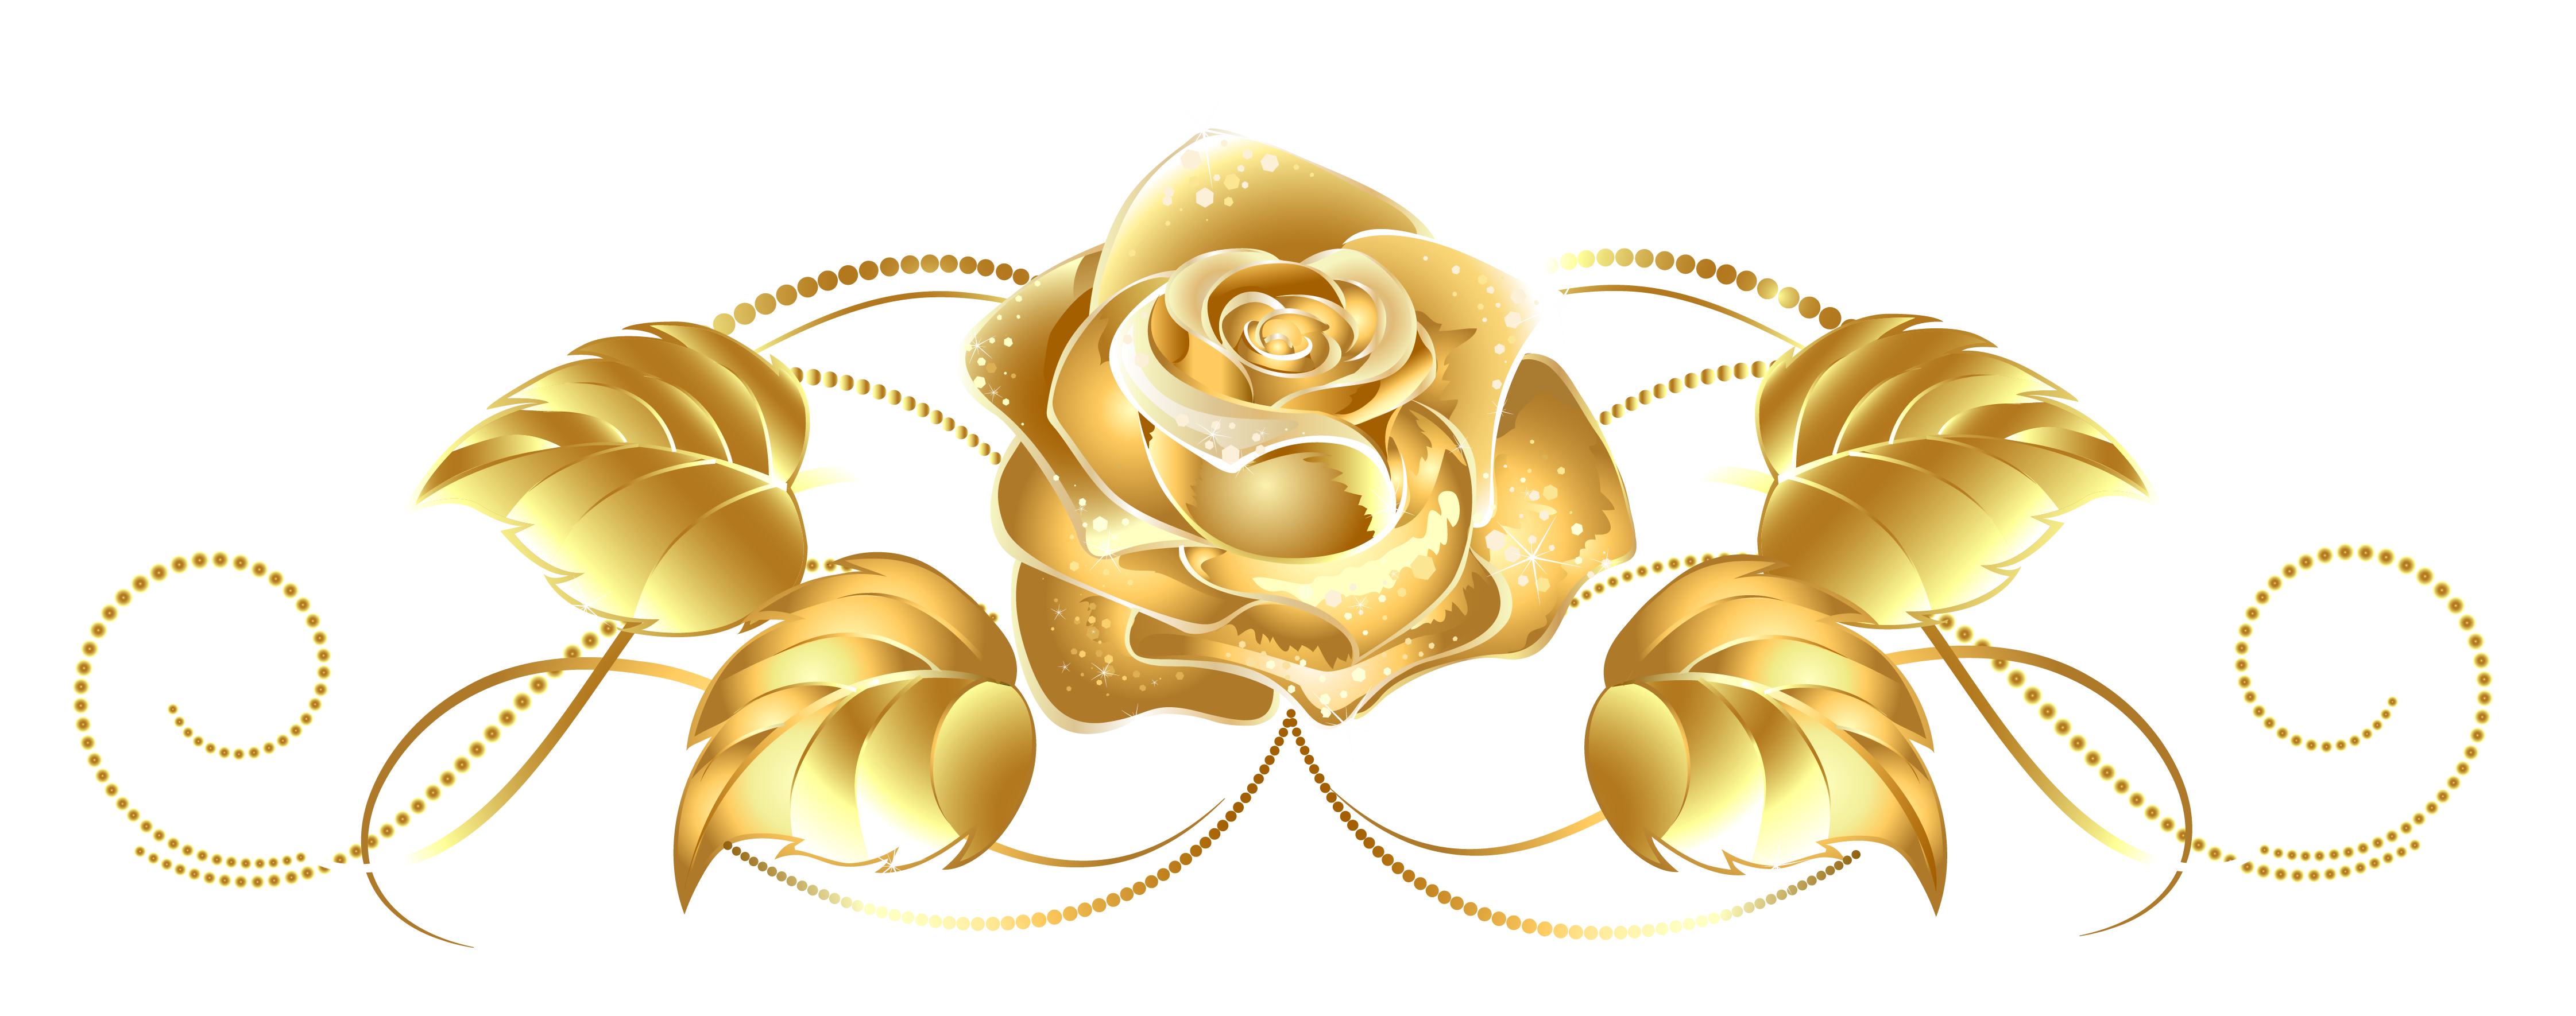 Beautiful rose decor png. Dust clipart gold